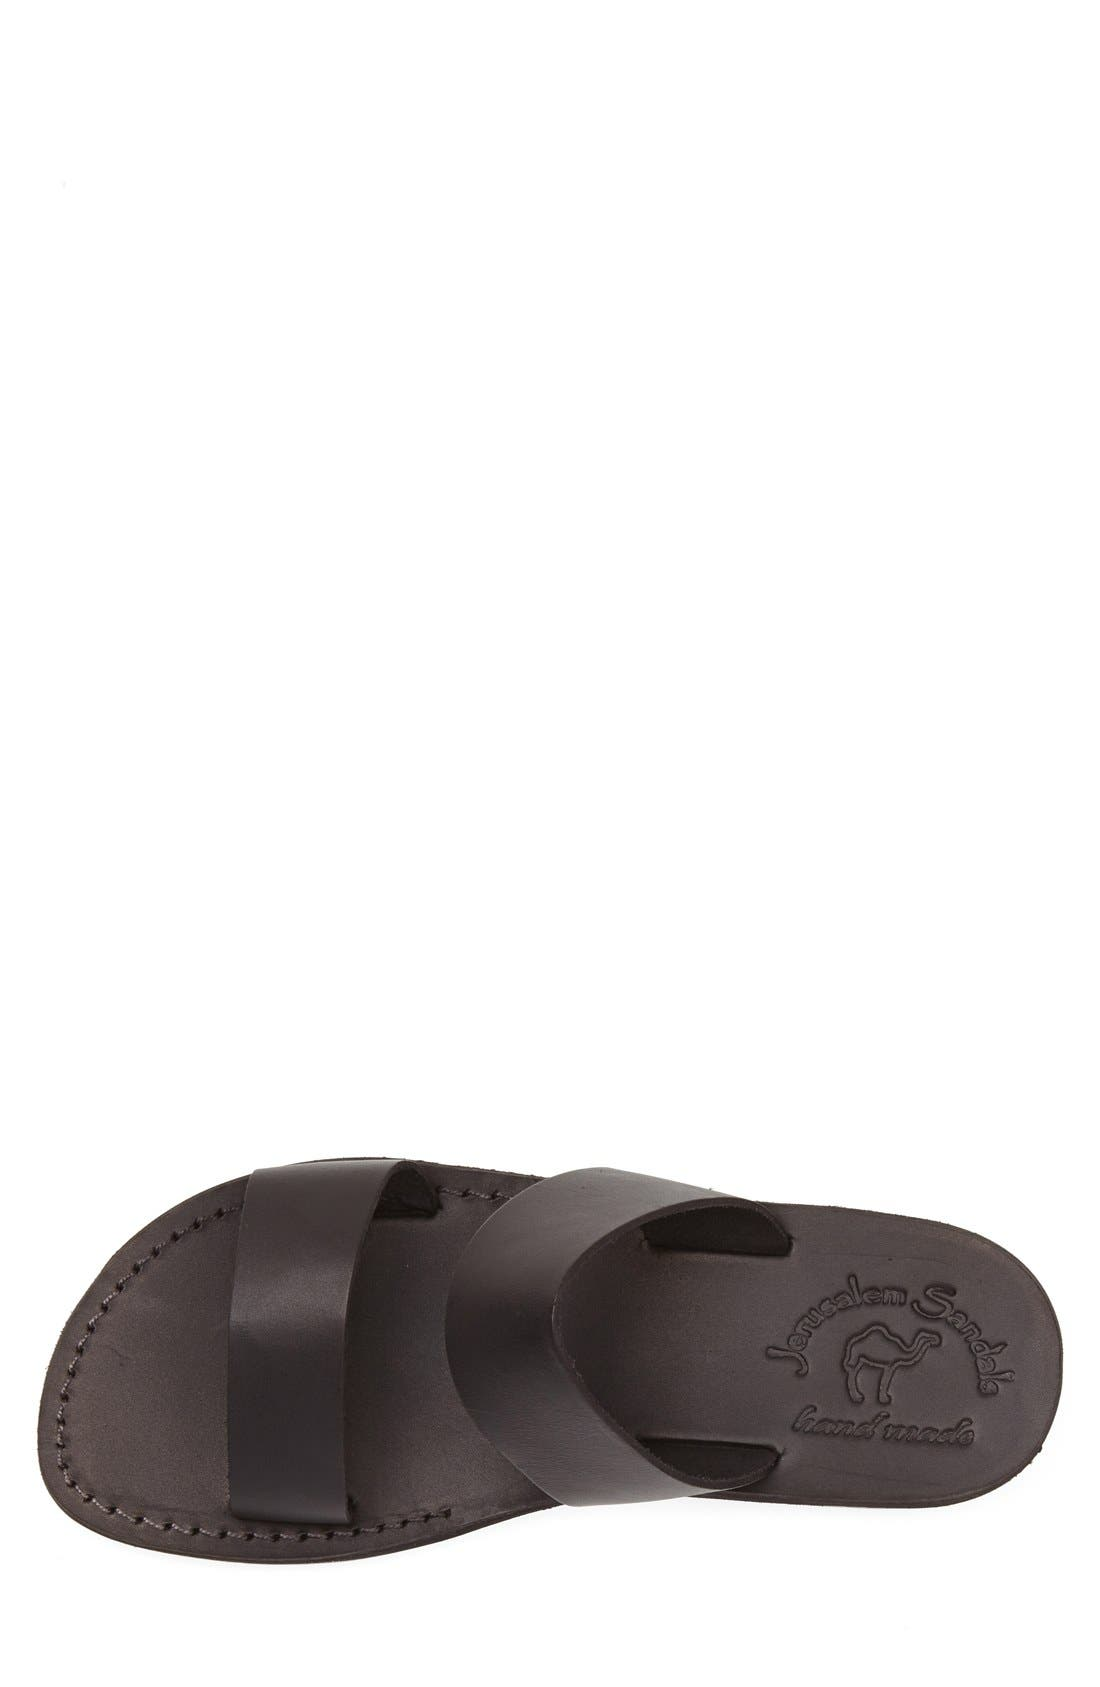 'Aviv' Leather Sandal,                             Alternate thumbnail 3, color,                             Black